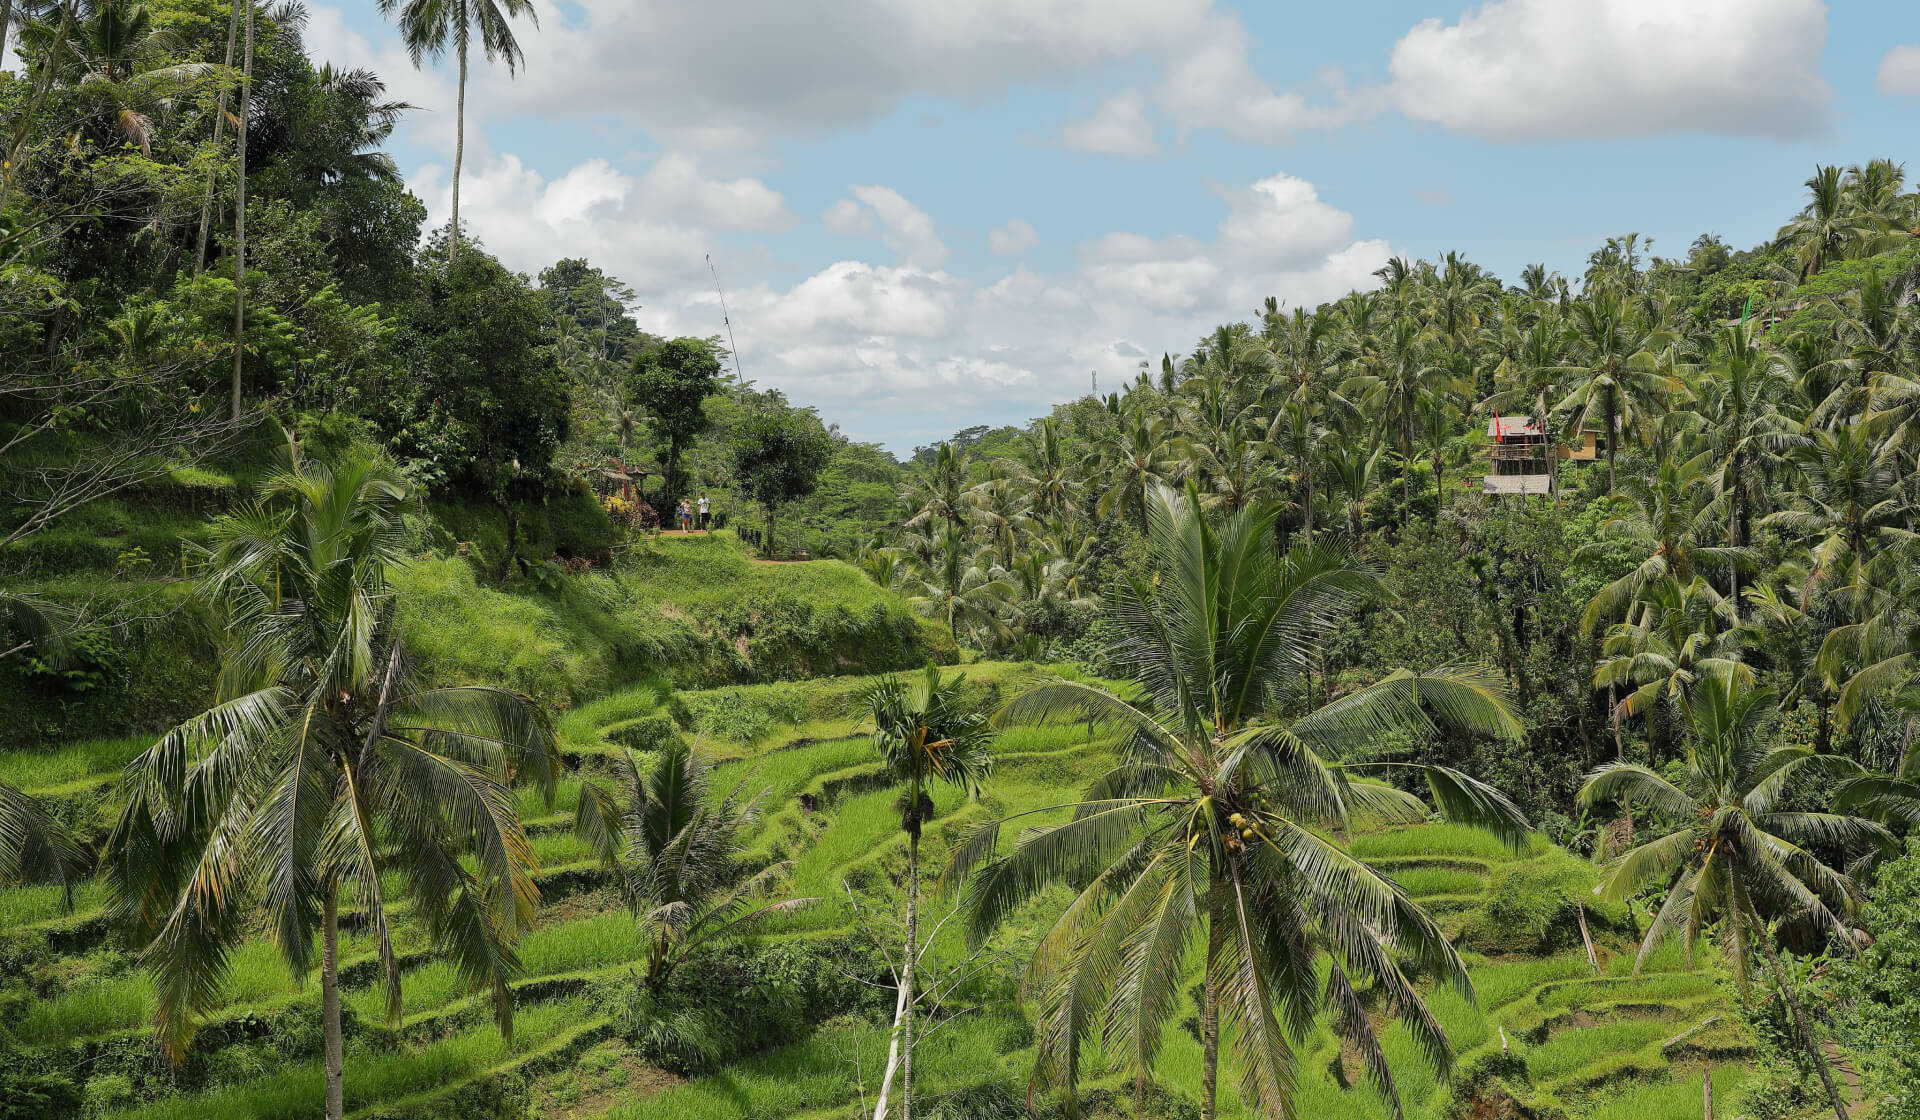 Lush green rice fields and palm trees in Bali, Indonesia